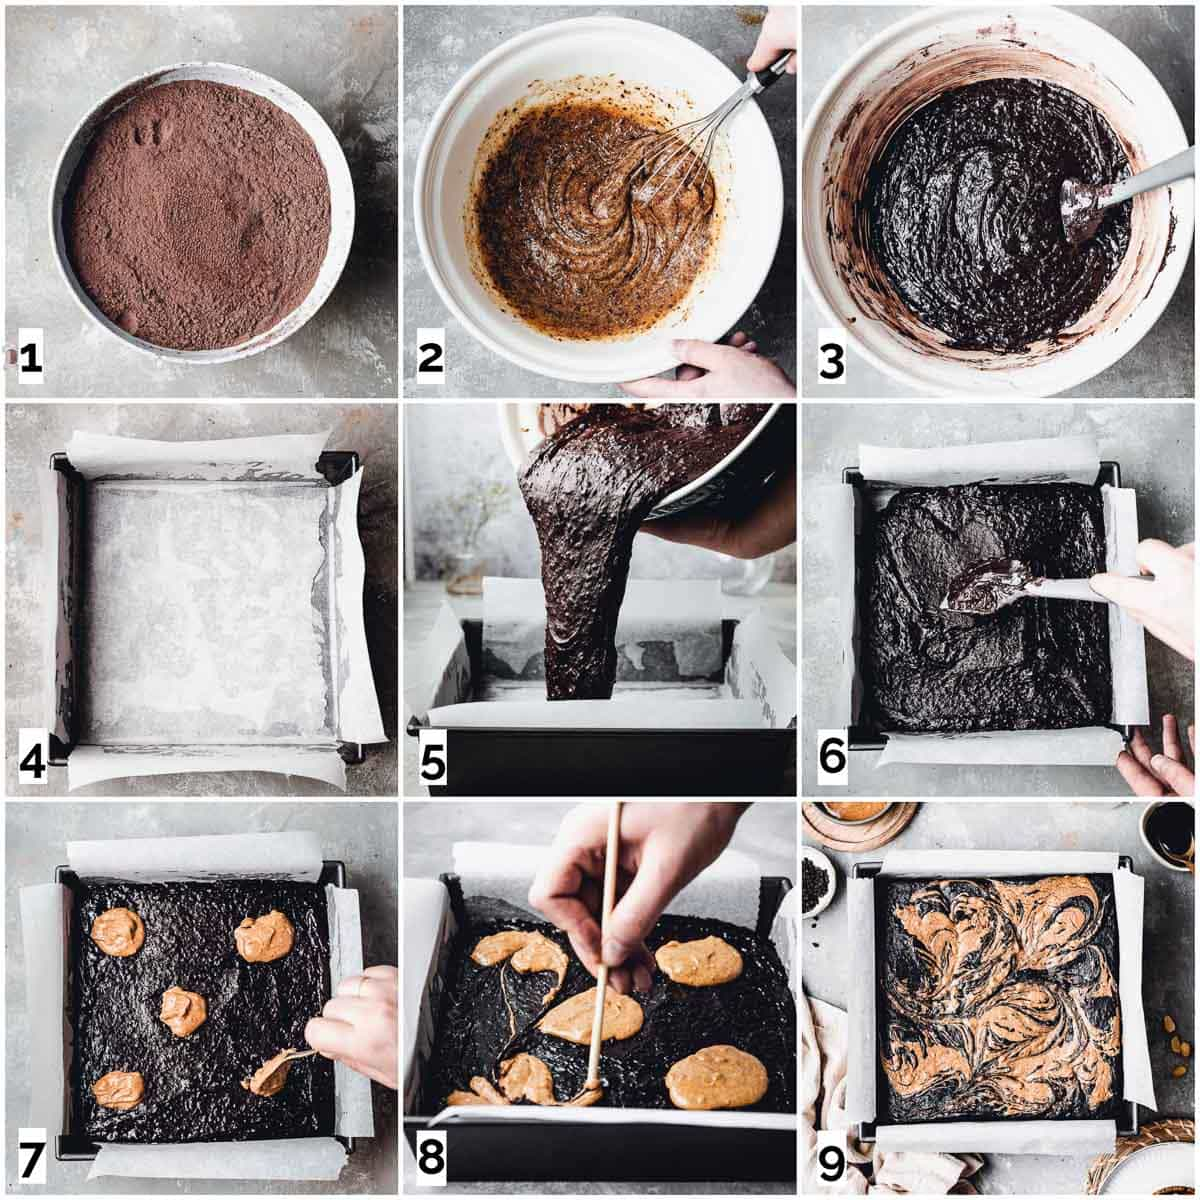 A collage of nine images showing nine steps in making chocolate brownie.